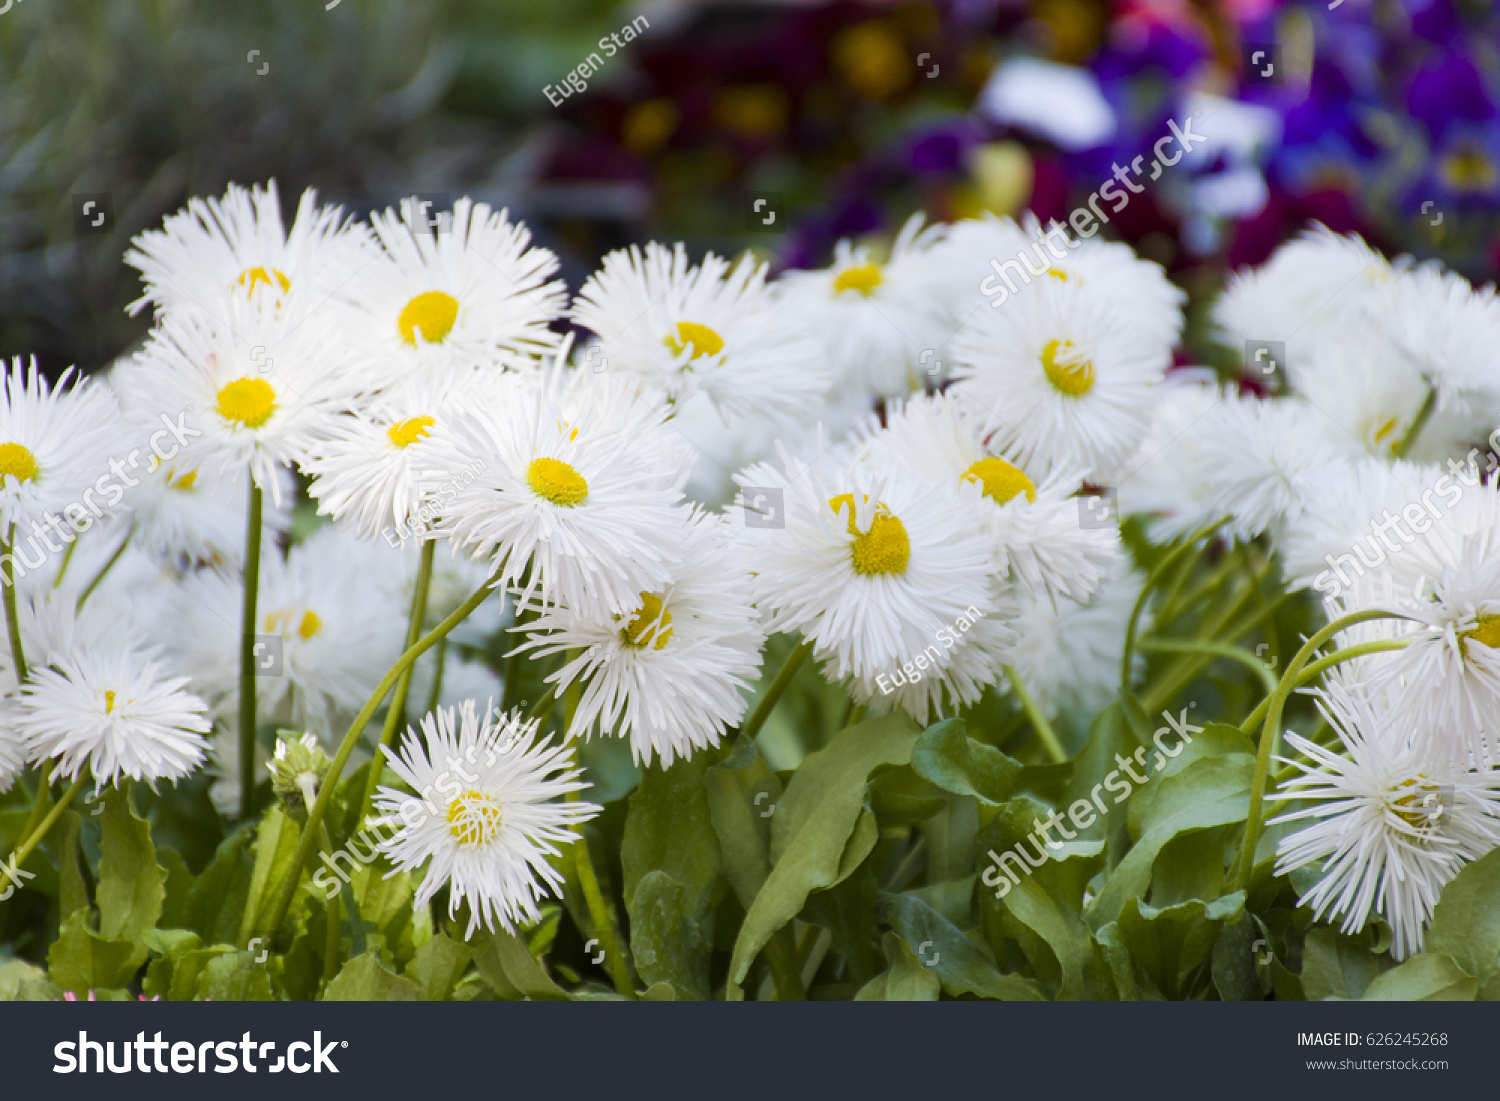 White Flowers Yellow Middle Stock Photo Edit Now 626245268